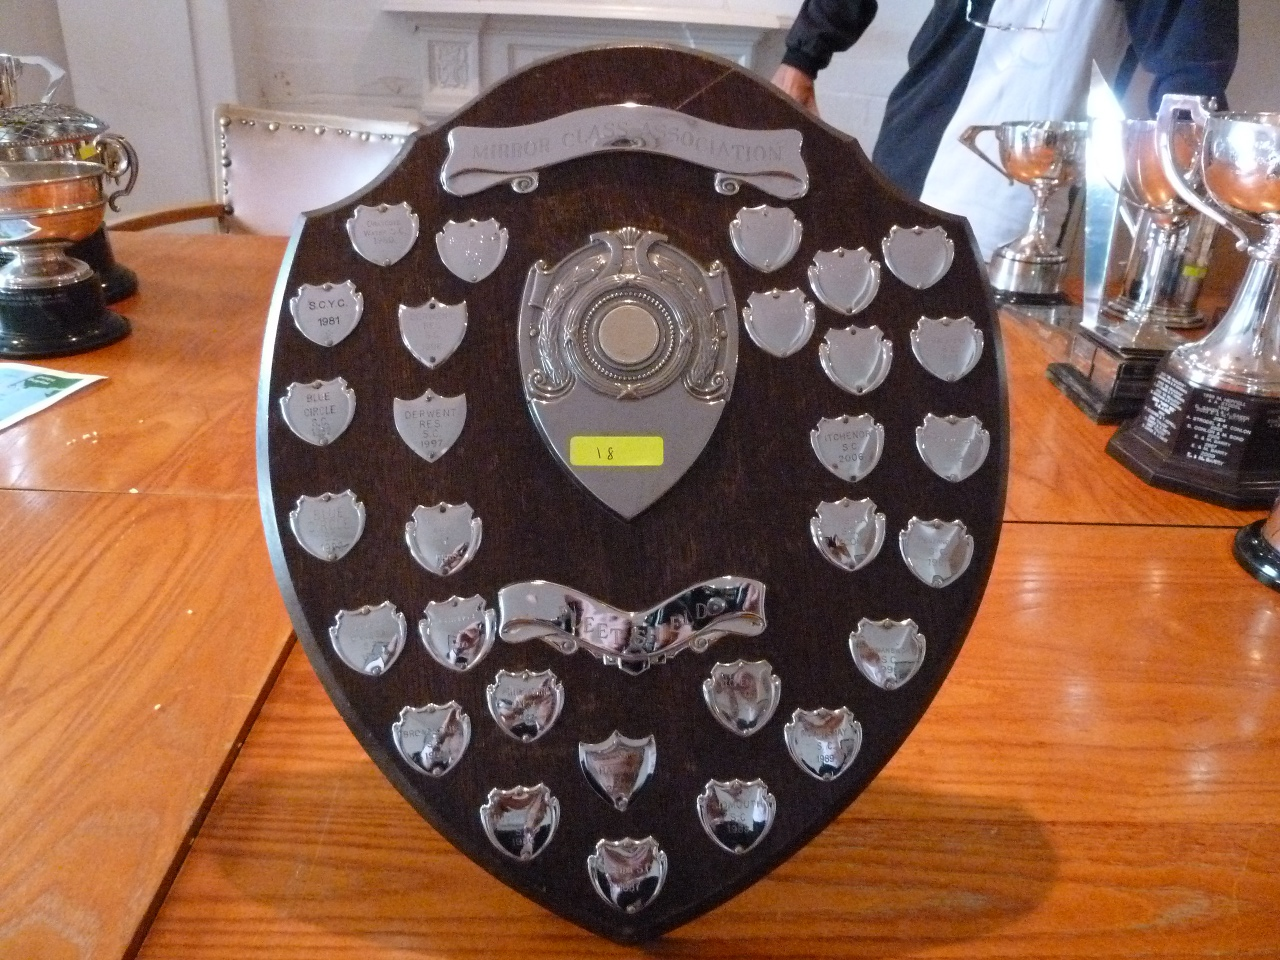 A wooden shield with small engraved shields mounted on it